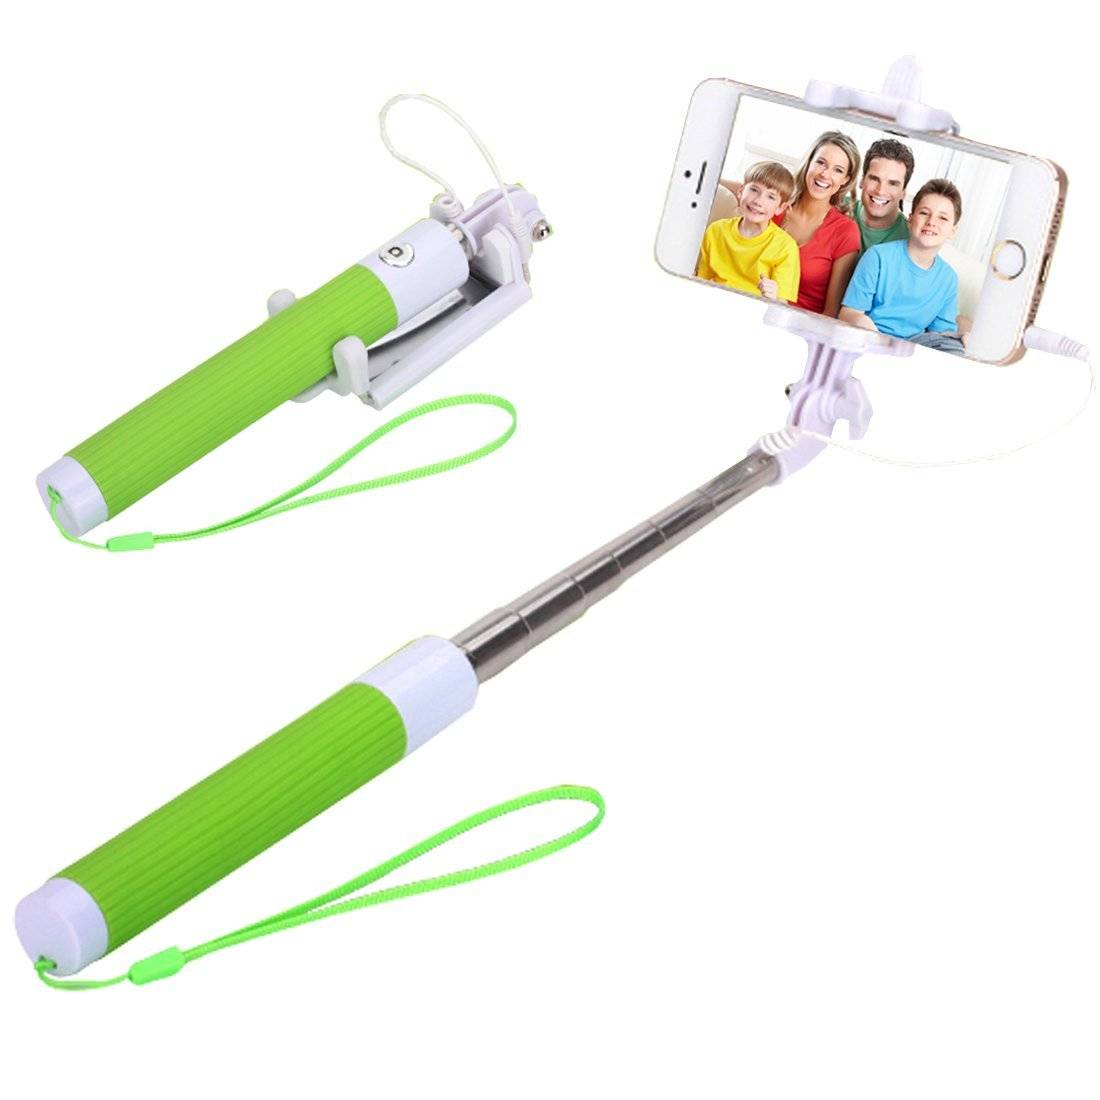 Sell Hot Folding Selfie Stick Cable Drived Wired Monopod Tripod for iphone,samsung